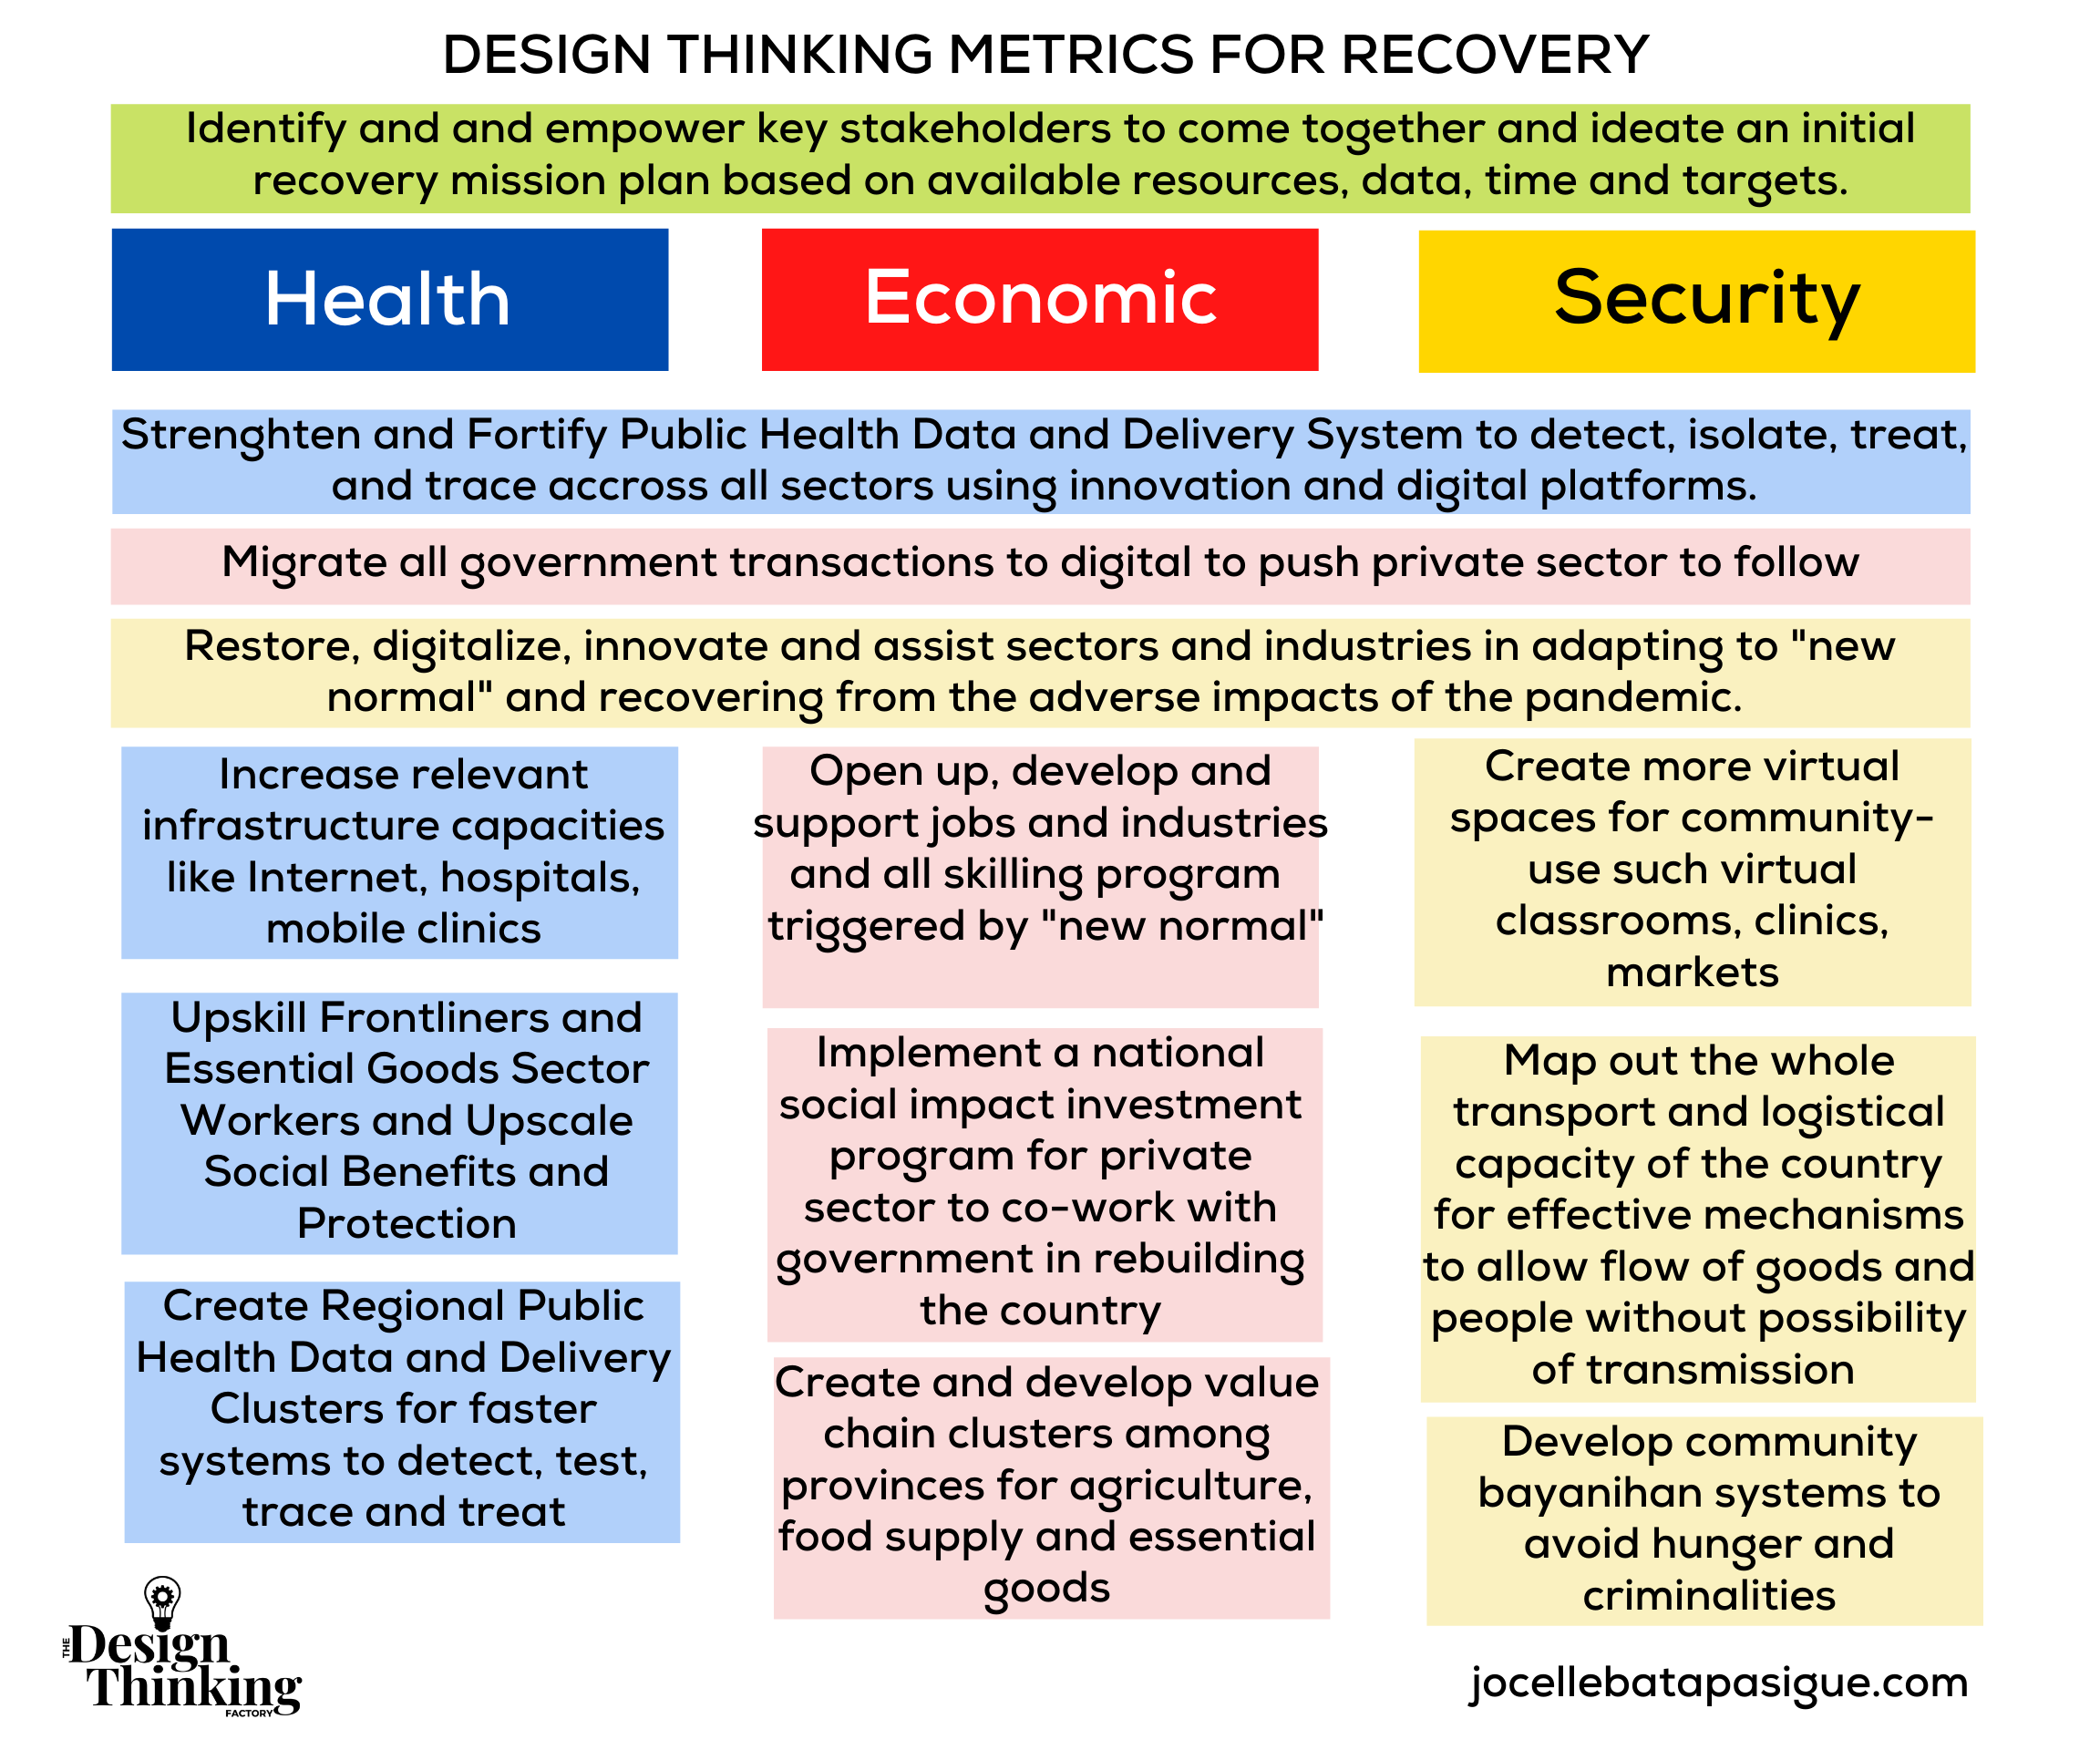 DESIGN THINKING METRICS FOR RECOVERY